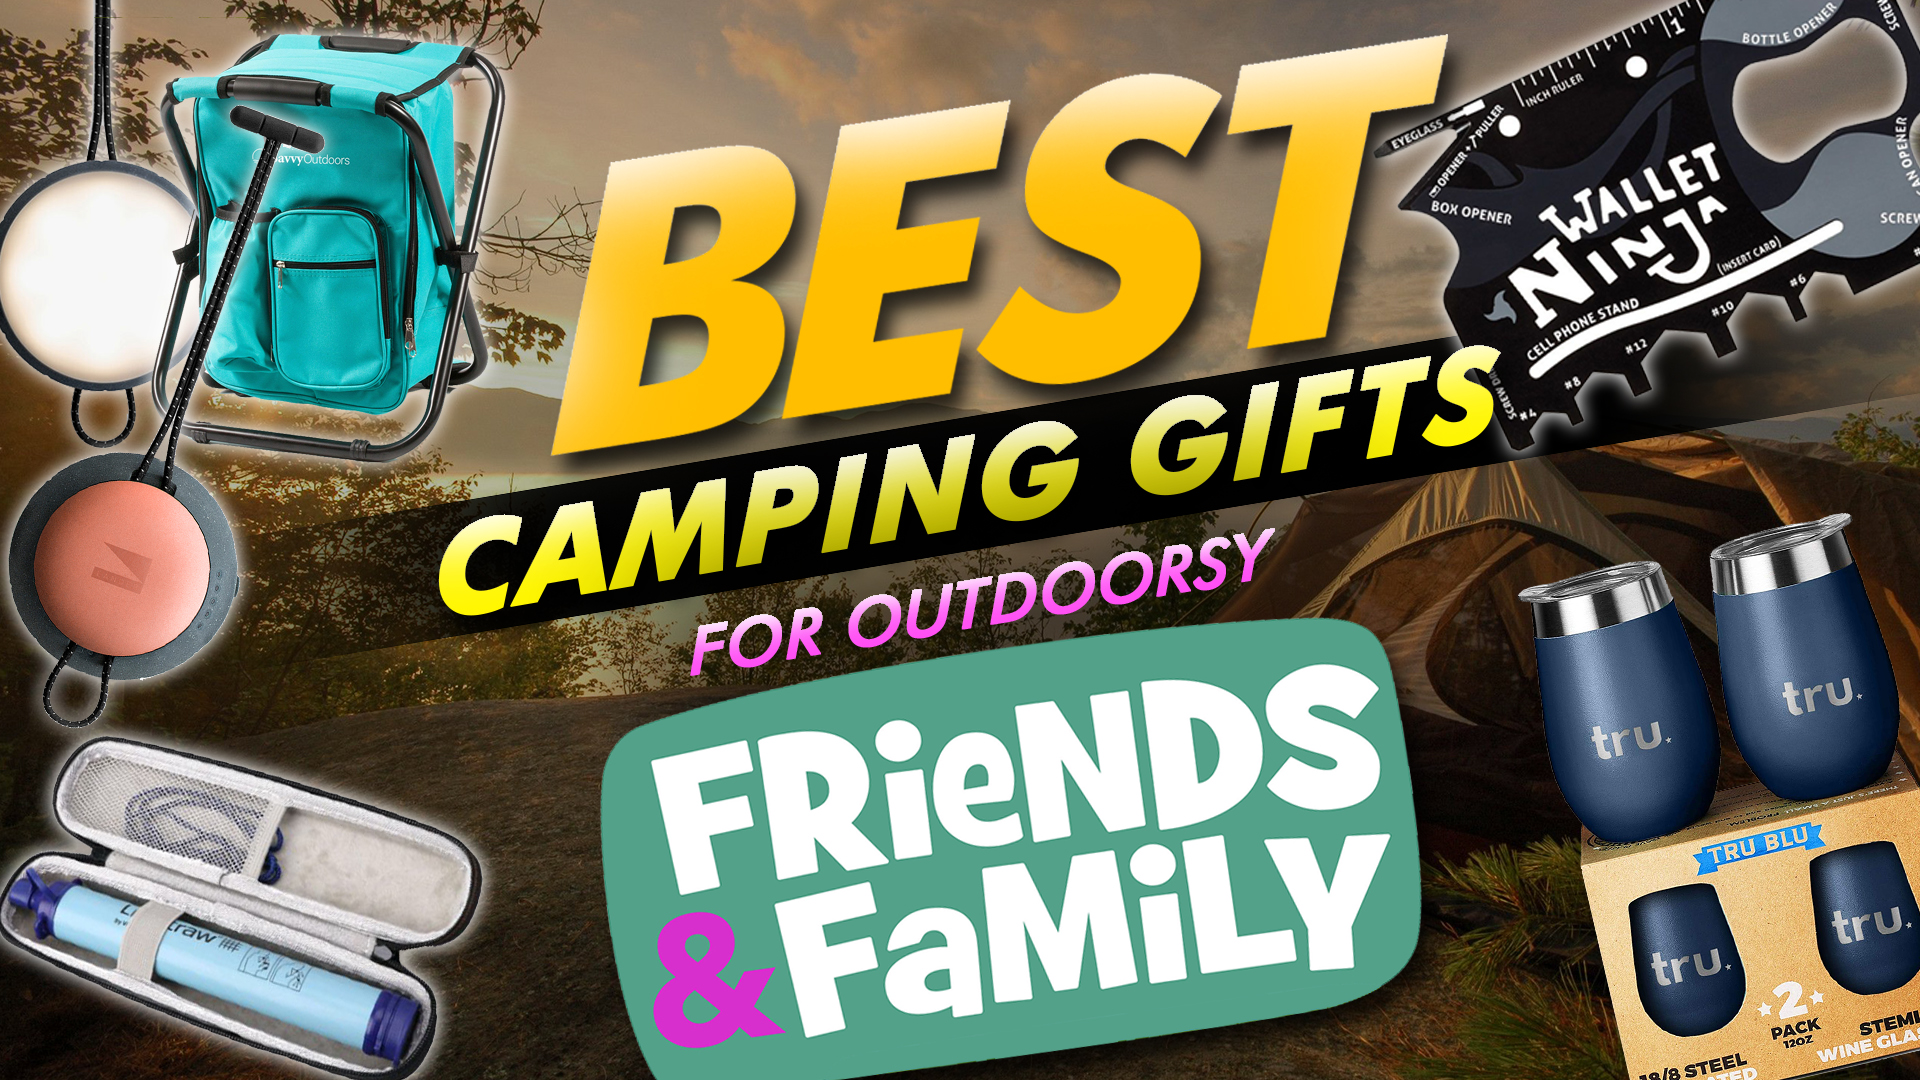 Best Camping Gifts For Outdoorsy Friends And Family